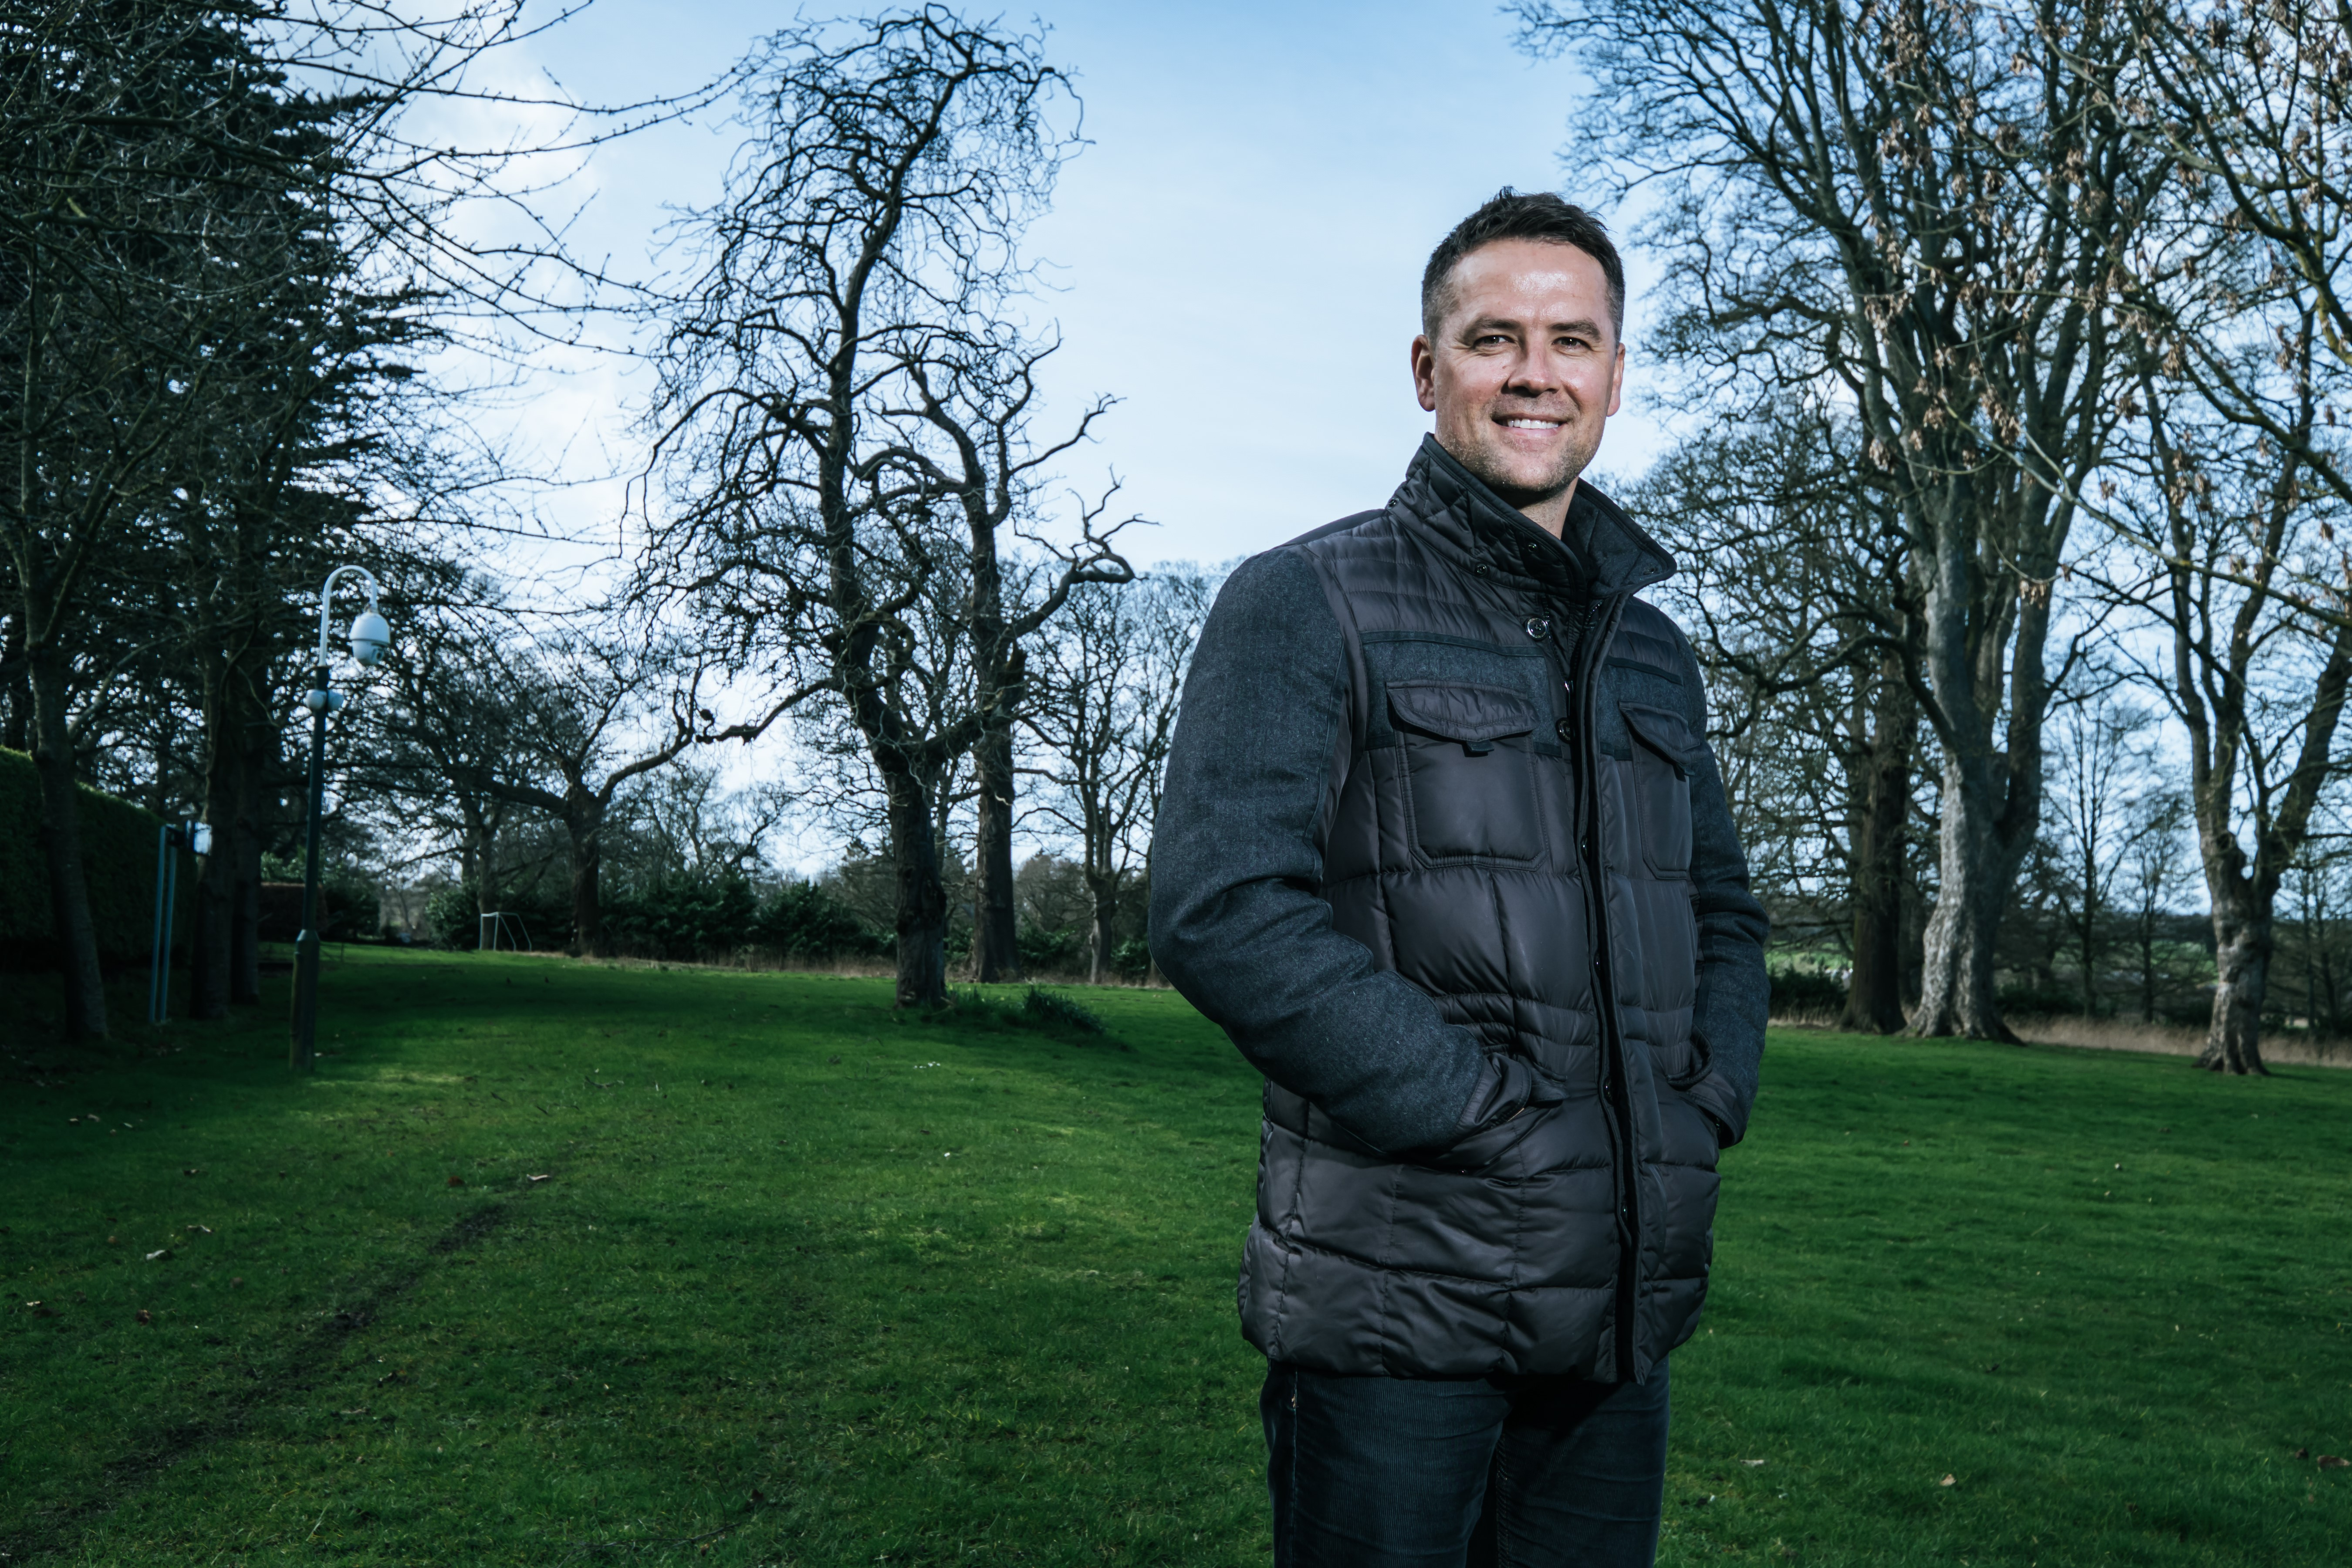 Former Liverpool and England striker Michael Owen is thriving in retirement but he knows contemporaries who are not.